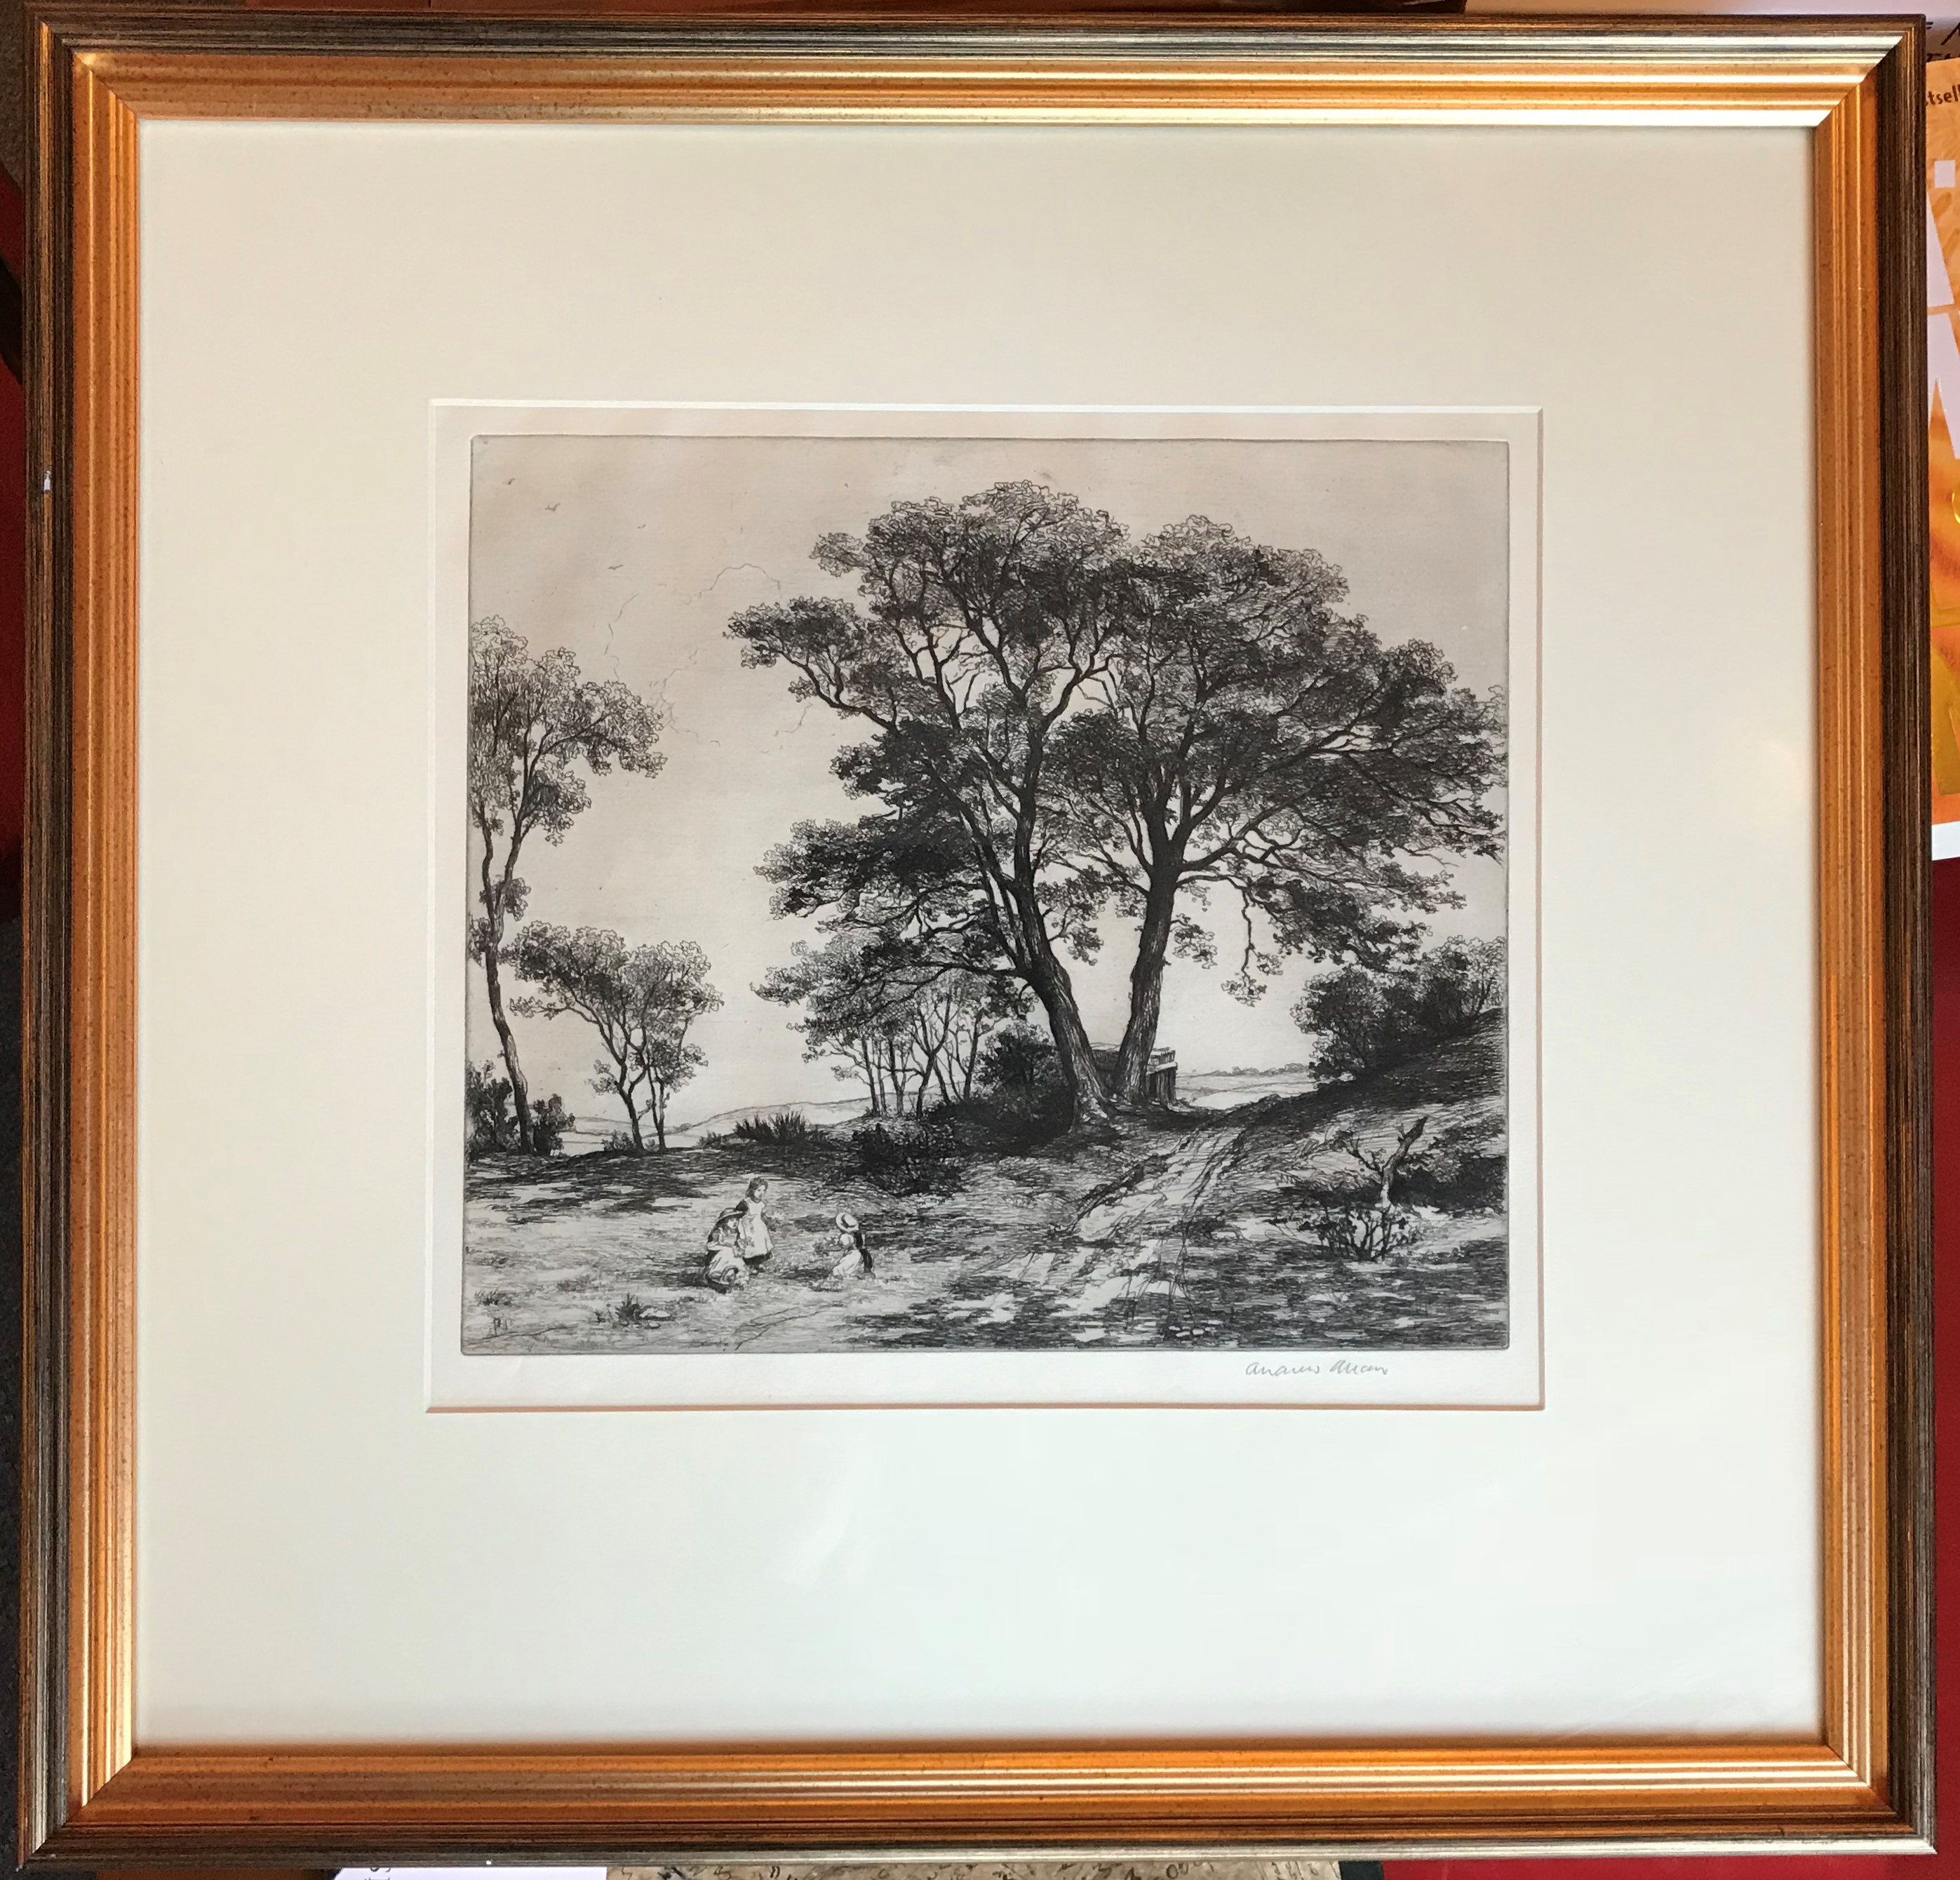 Andrew Allan (1863-1940) pencil signed etching The Picnic